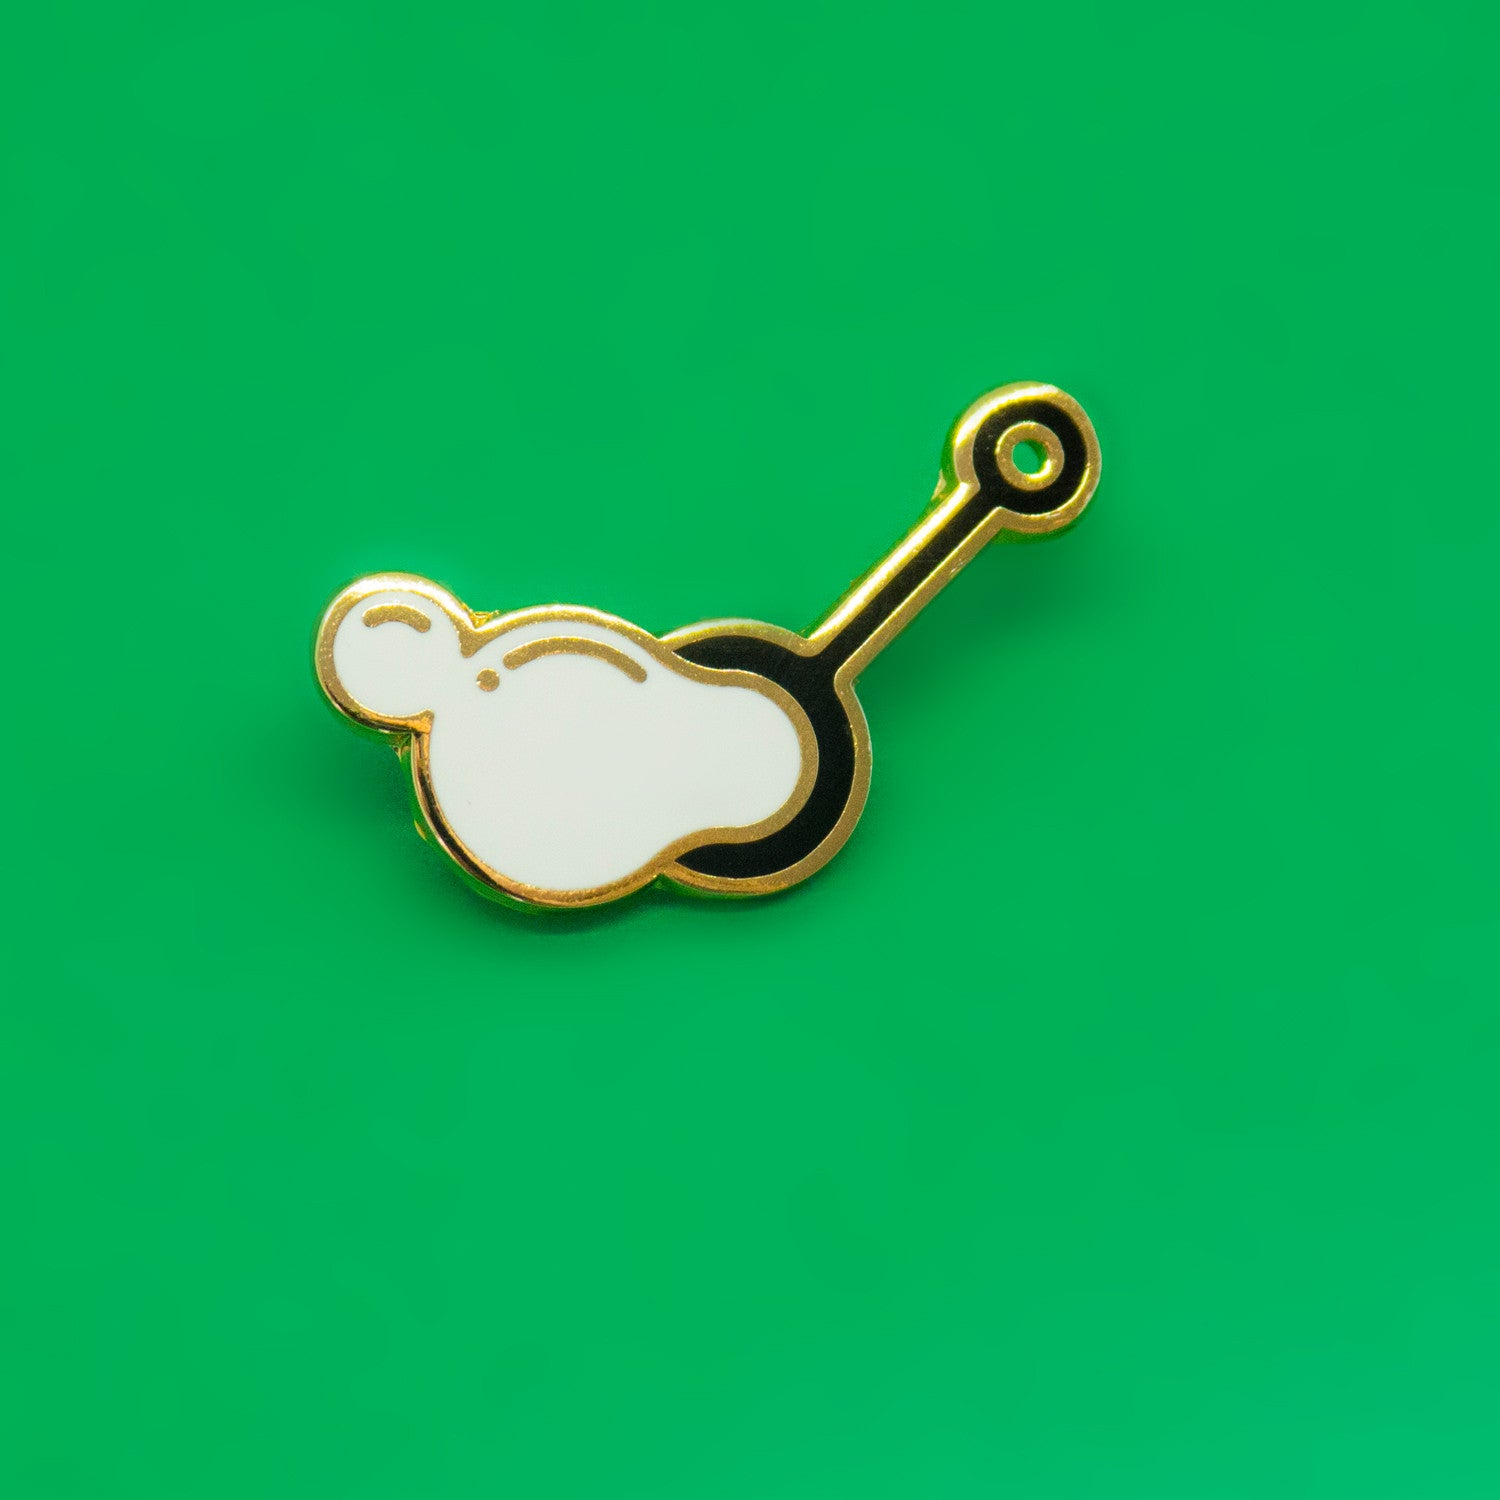 Bubble Wand Enamel Pin